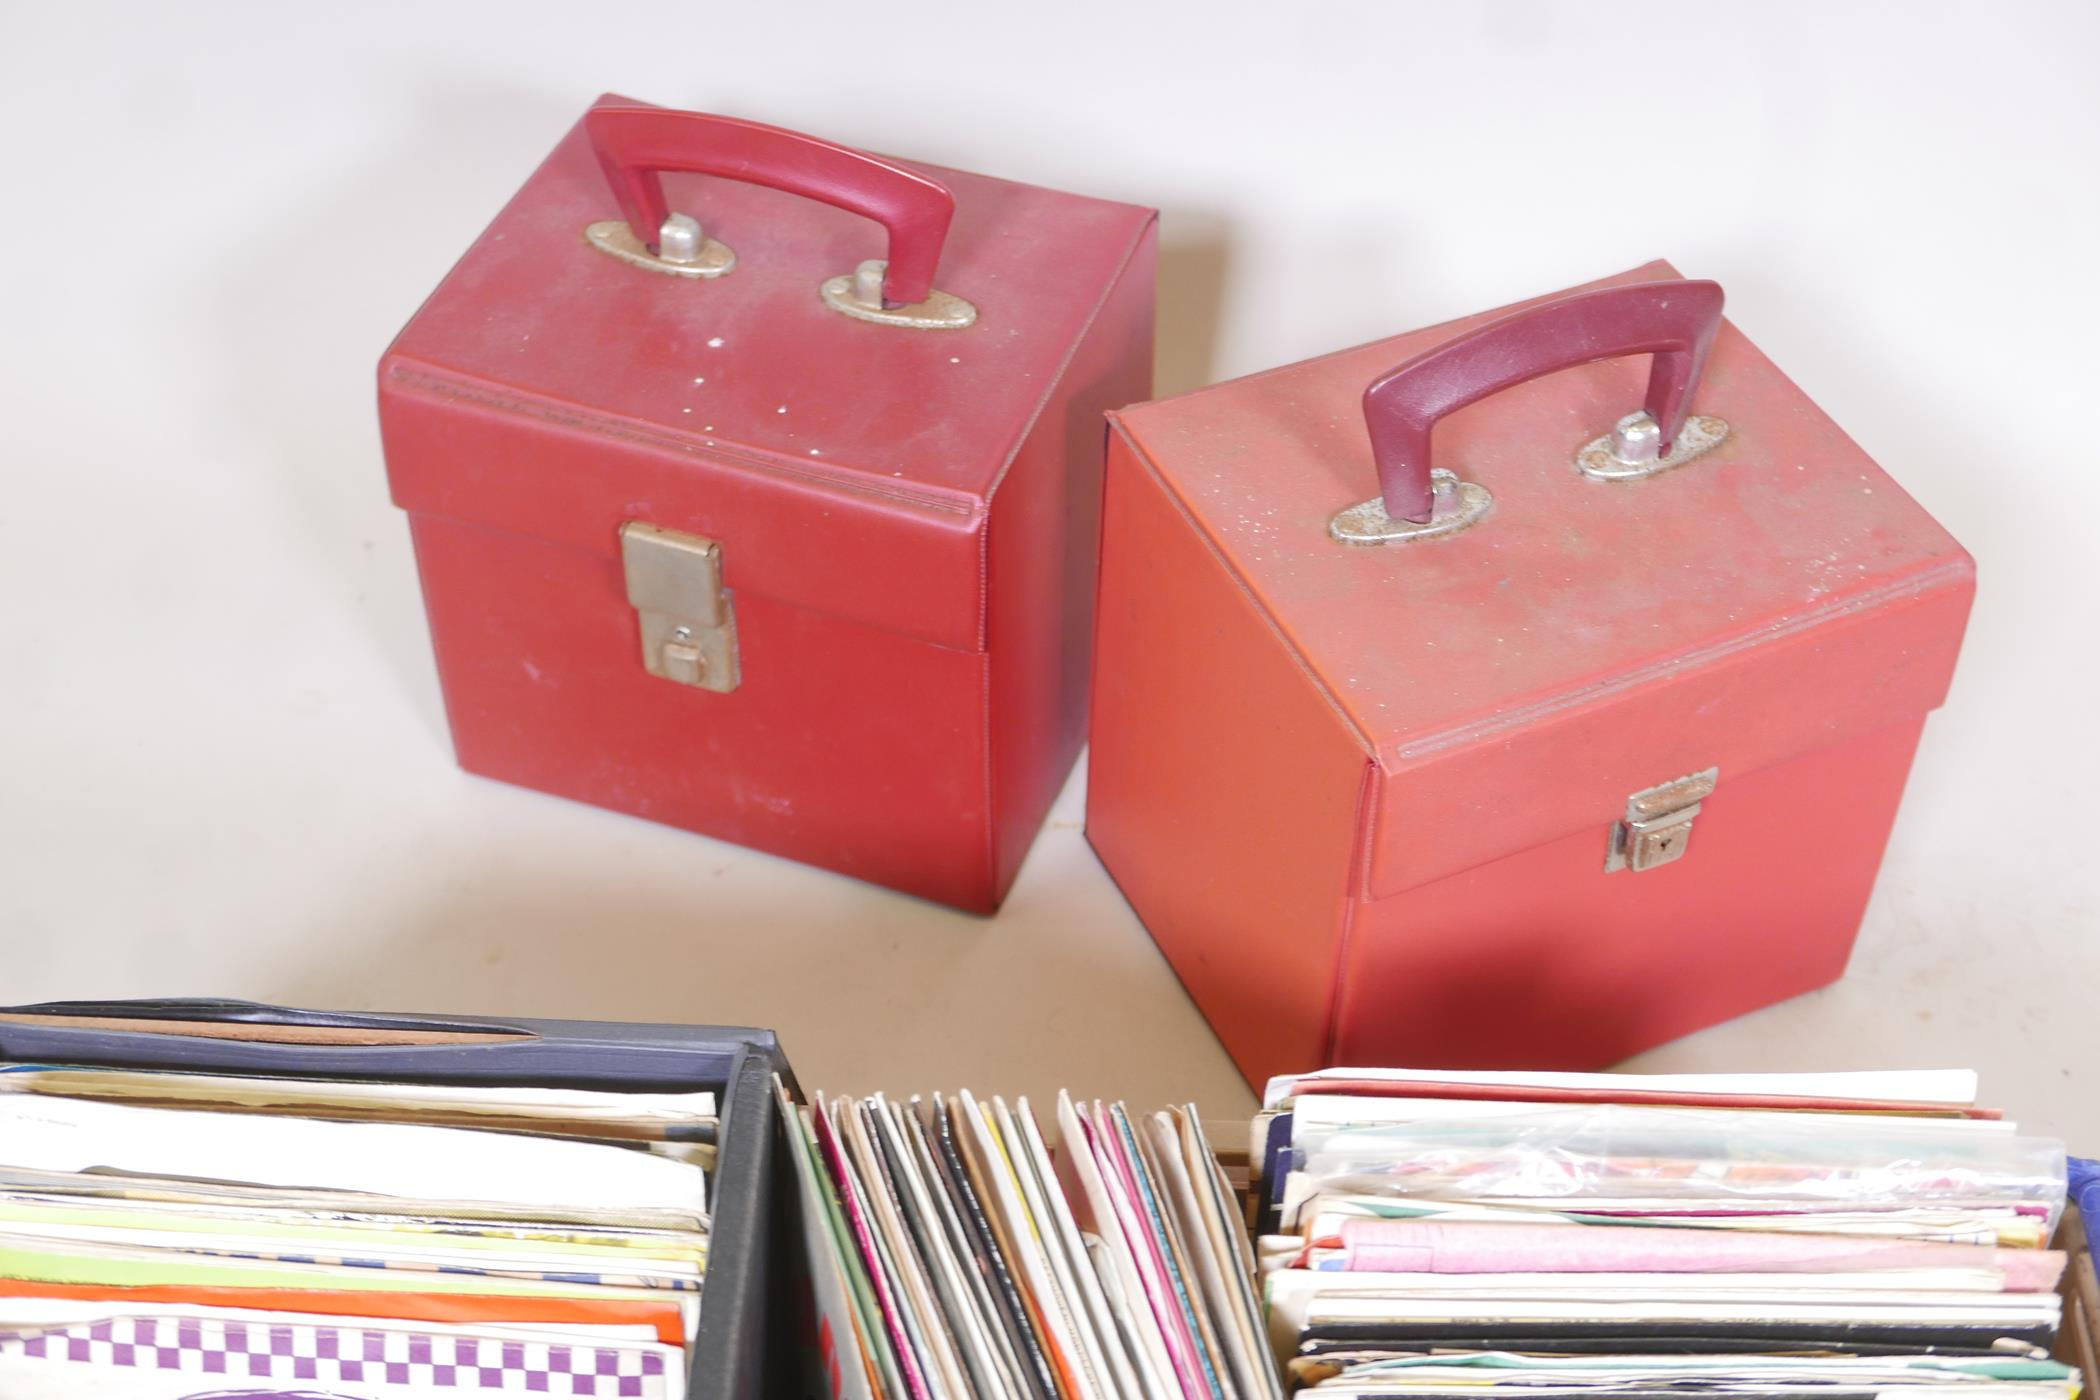 A large quantity of 45 vinyl singles, pop, classical, jazz, world etc, and four singles carry cases - Image 4 of 4